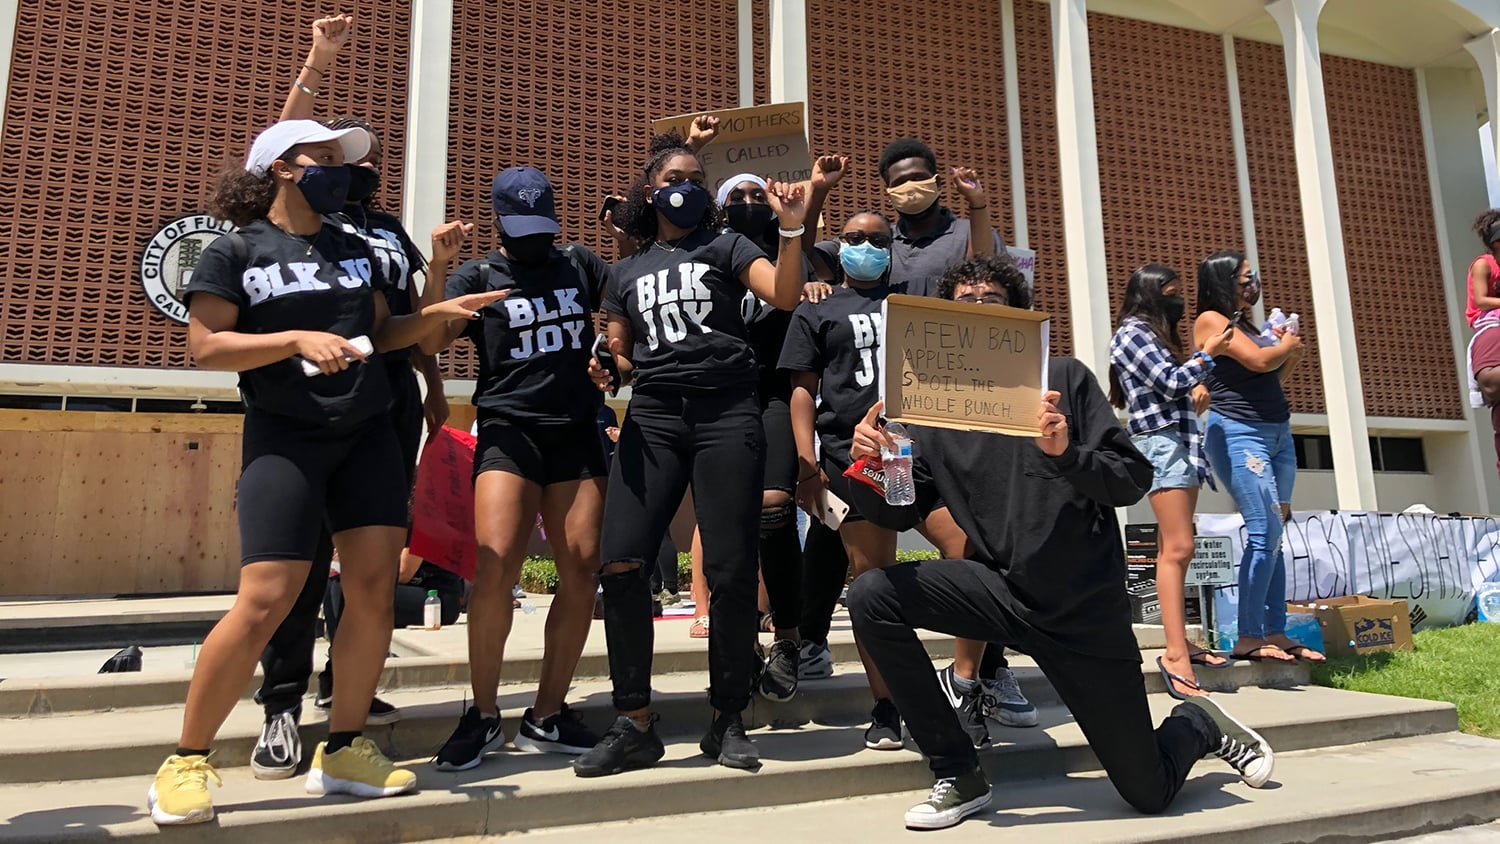 voiceofoc.org: Celebrating Black Joy as an Alternative Form of Resistance and Reclaiming of Humanity